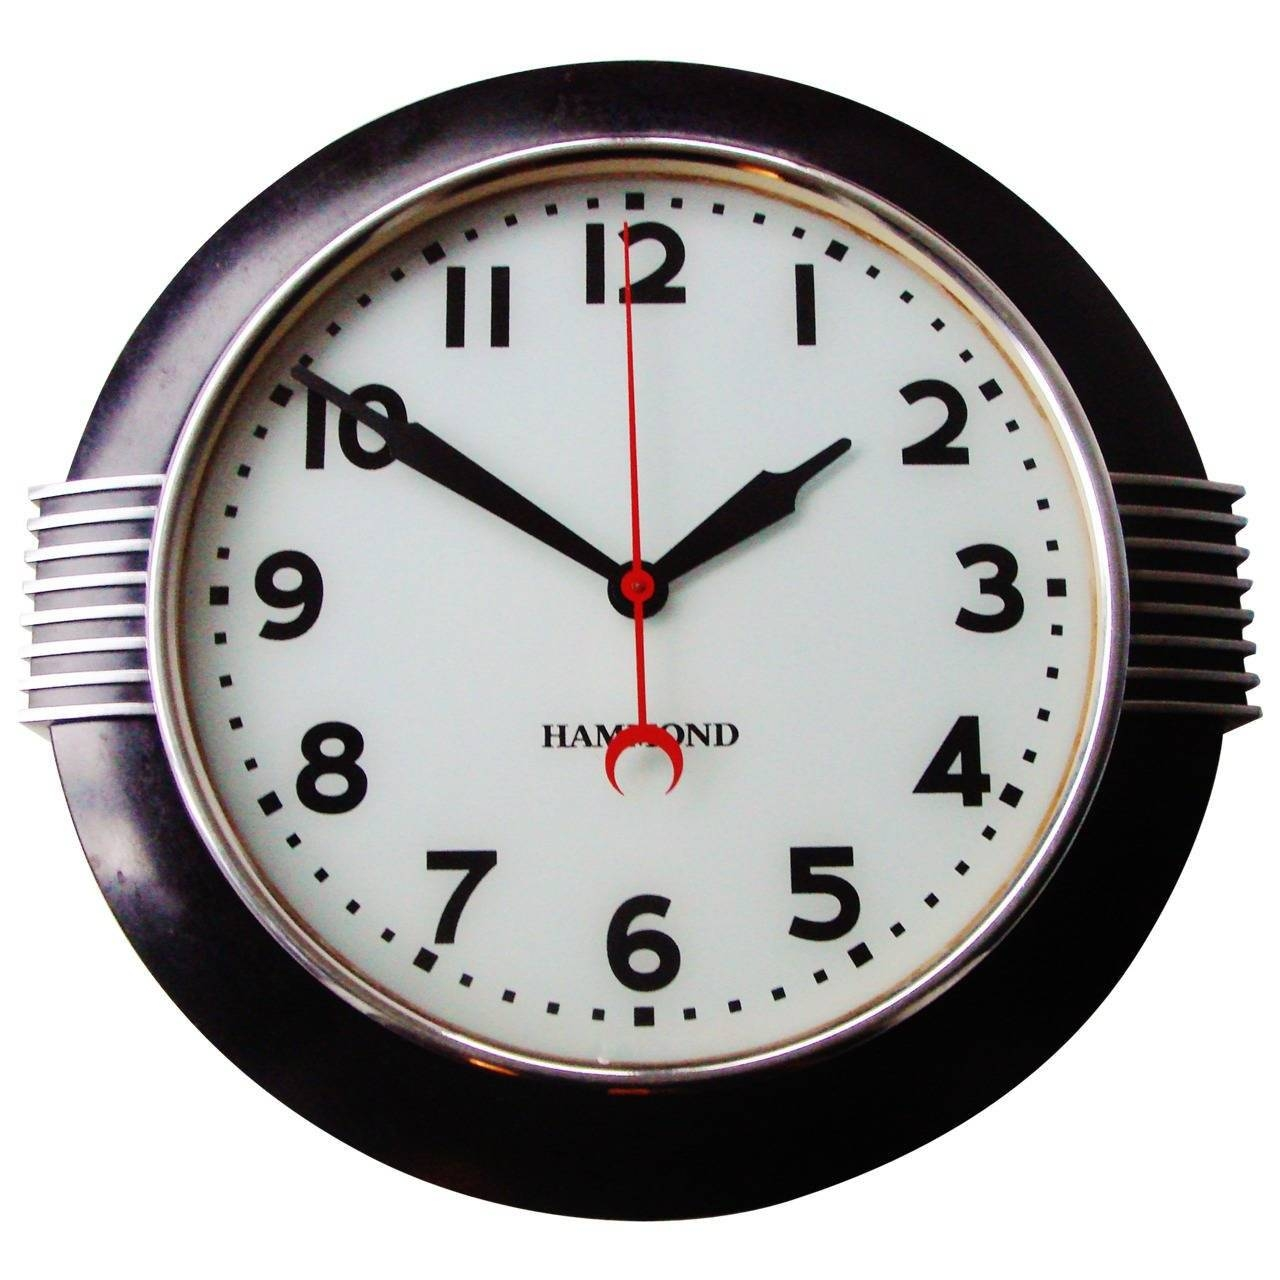 Large American Art Deco Chrome And Black Illuminated Dial Wall Regarding Latest Large Art Deco Wall Clocks (View 3 of 30)